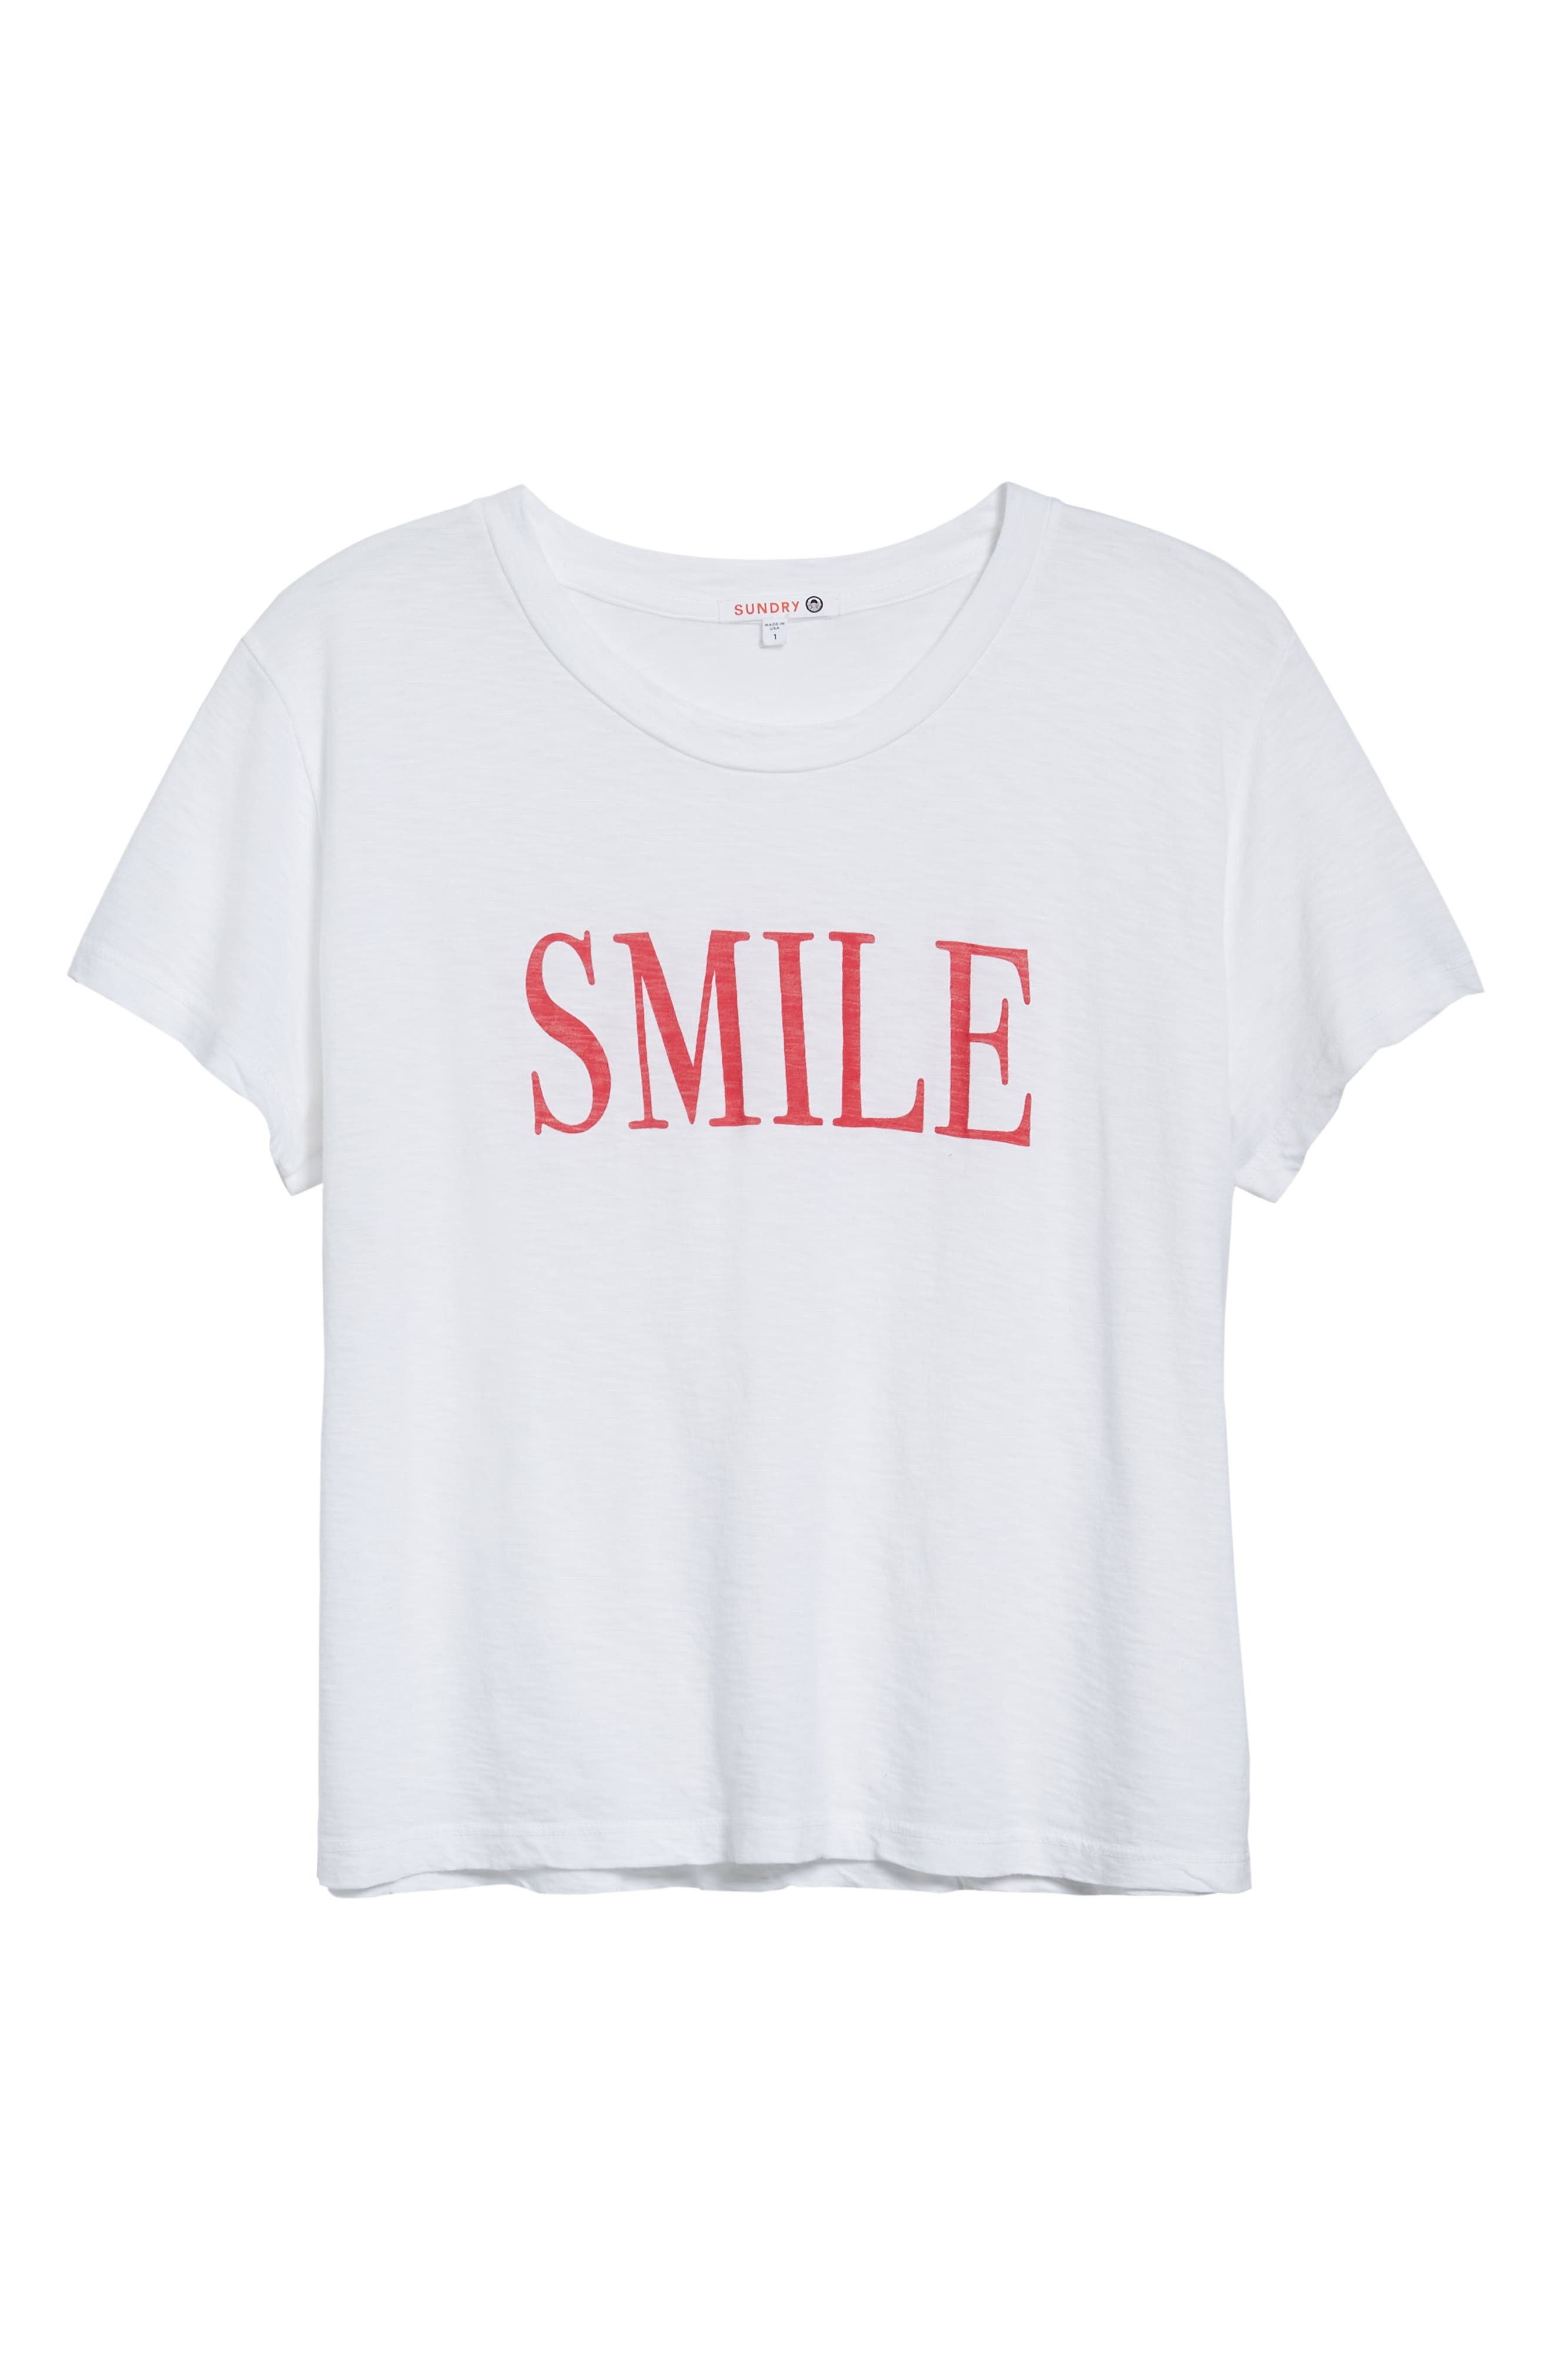 SUNDRY,                             Smile Boxy Cotton Tee,                             Alternate thumbnail 6, color,                             100